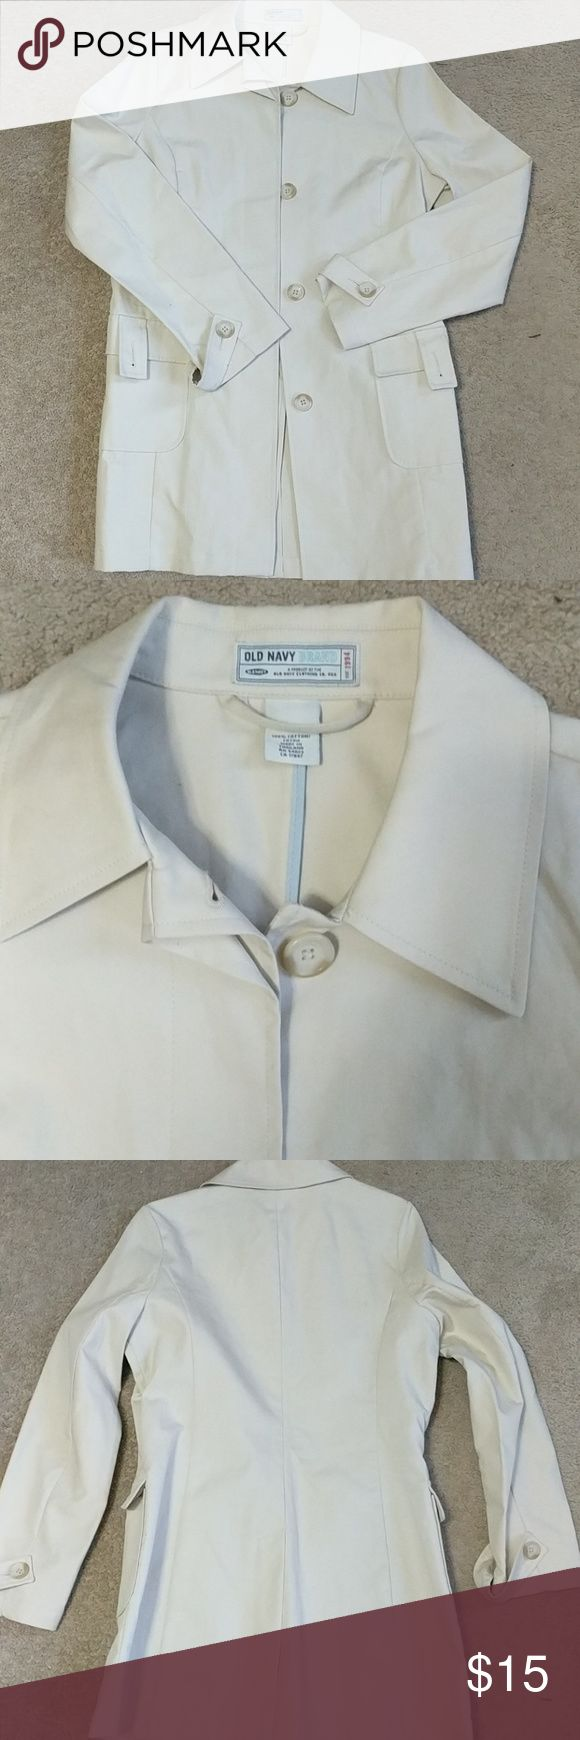 Old Navy Women's cream jacket size M Cream colored jacket with large buttons down the front. 2 button front pockets. 100% cotton  🌟Smoke free home 🌟No trades 🌟11251 Old Navy Jackets & Coats